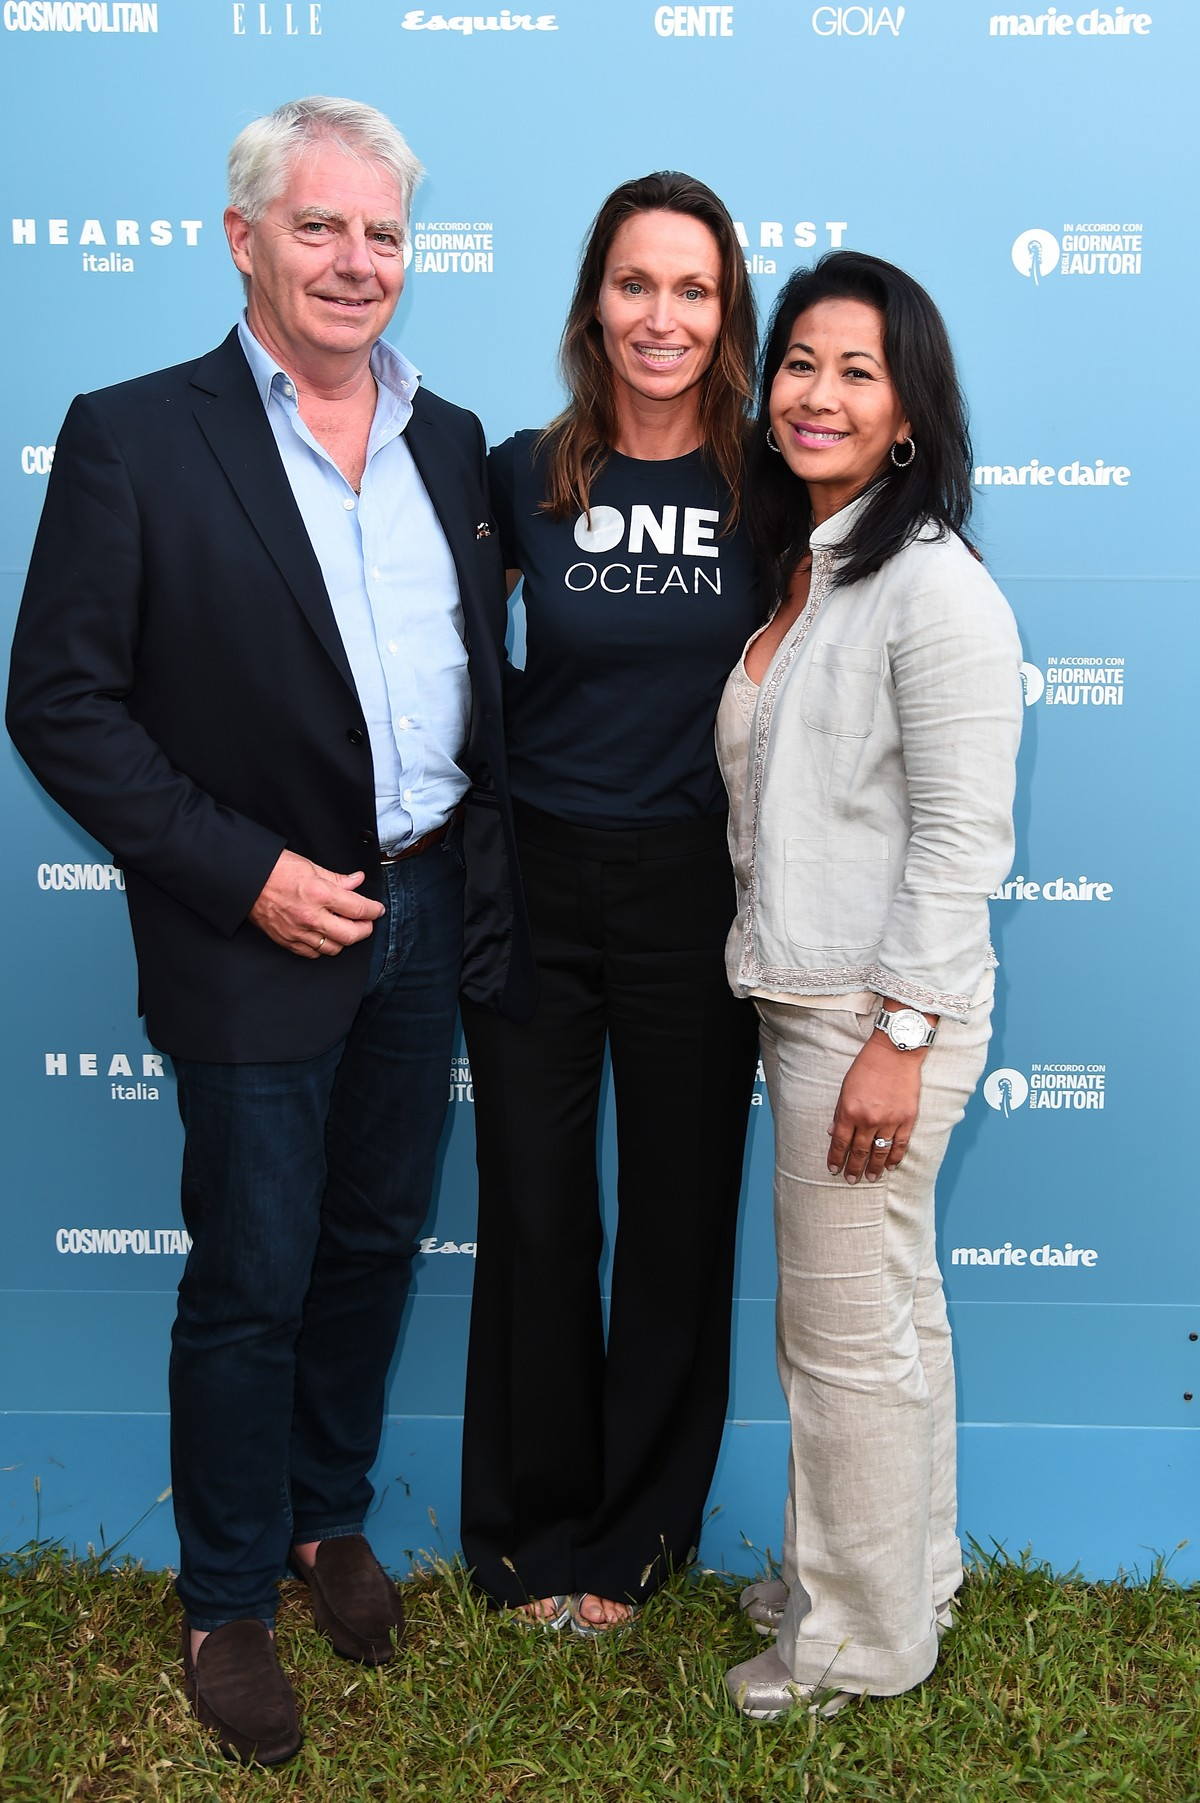 Festival Cinema Venezia 2018 One Ocean